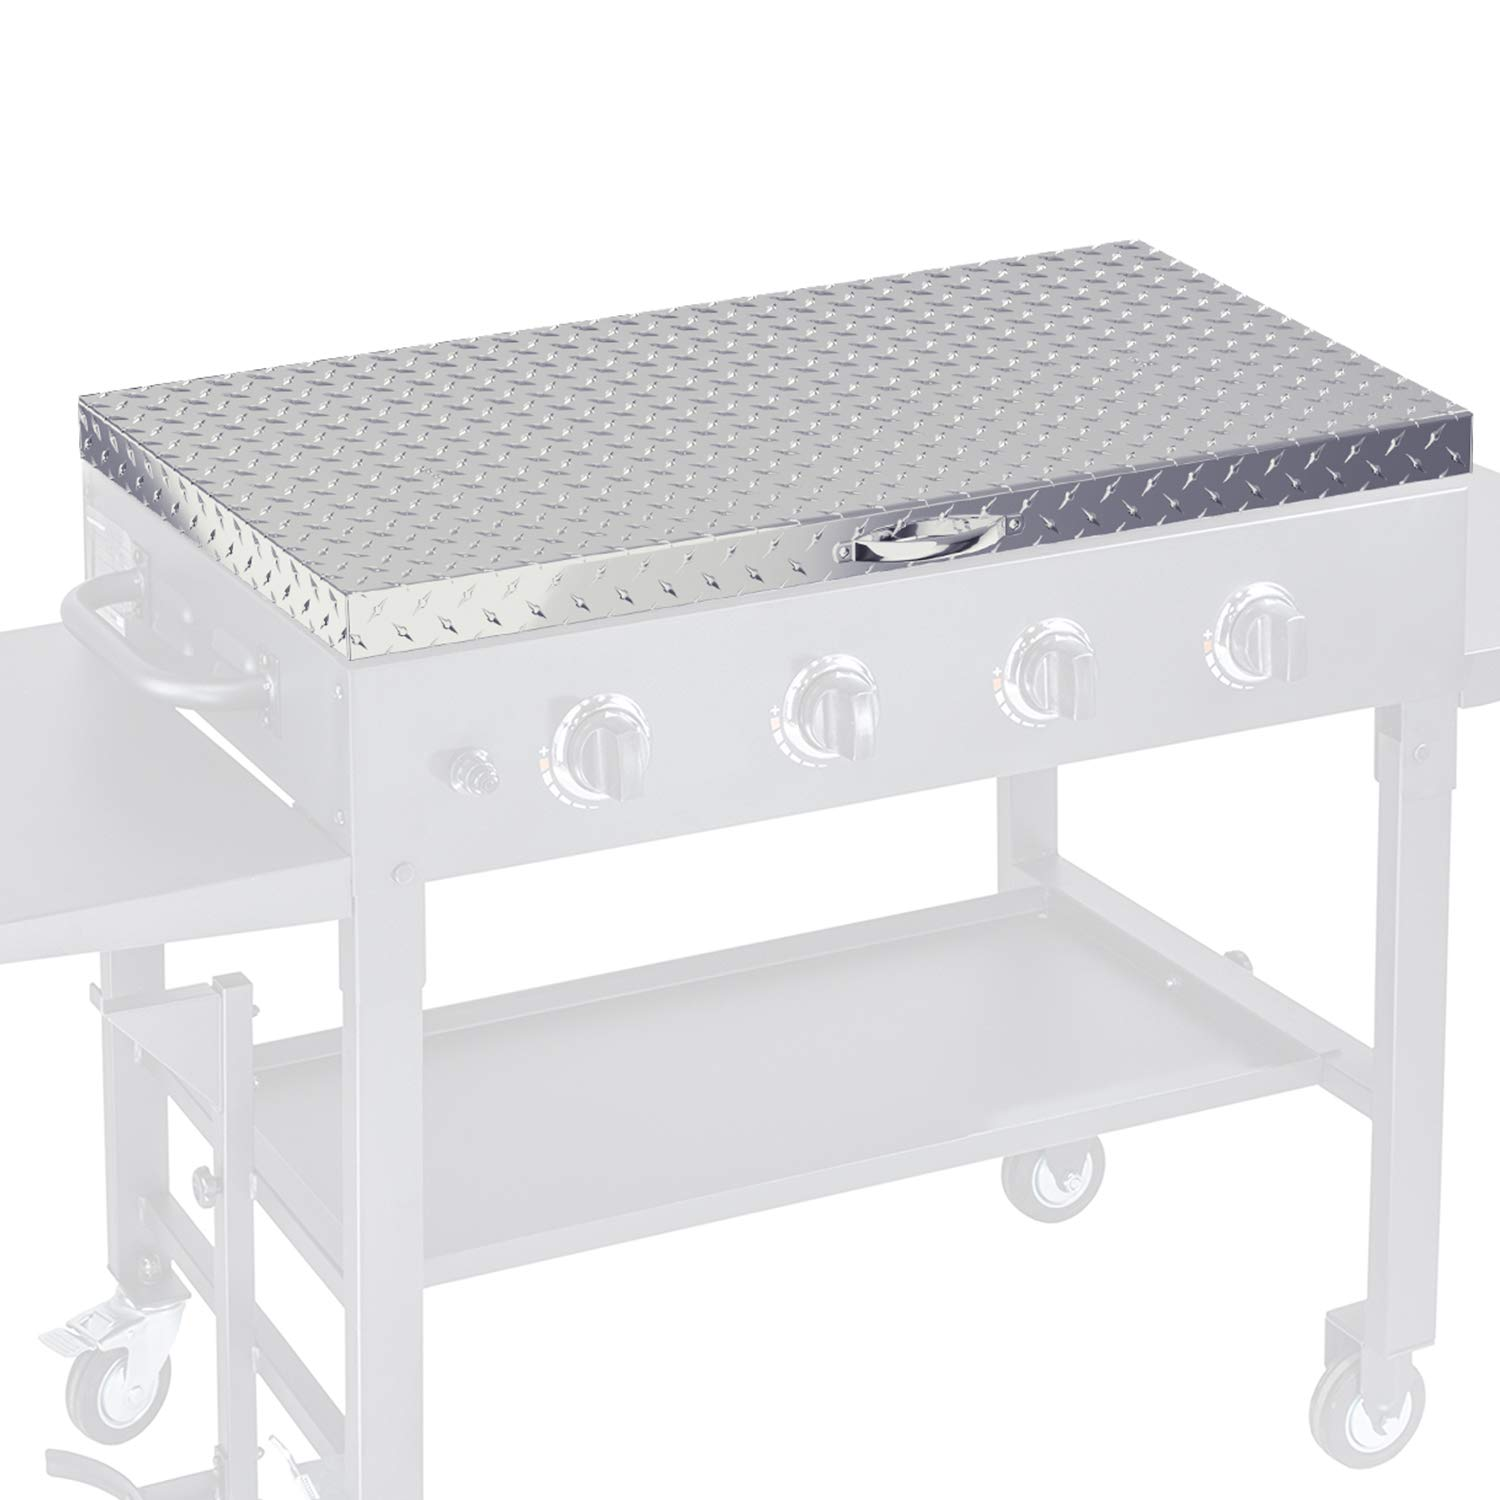 Griddle Cover 36 Inch Works For Blackstone Grill 36in Flat Top Gas Cooking Station Hard Cover Lid With Waterproof Aluminum Diamond Plate Stainless Steel Handle For Outdoor 36inch Bbq Hood Accessories Amazon Sg